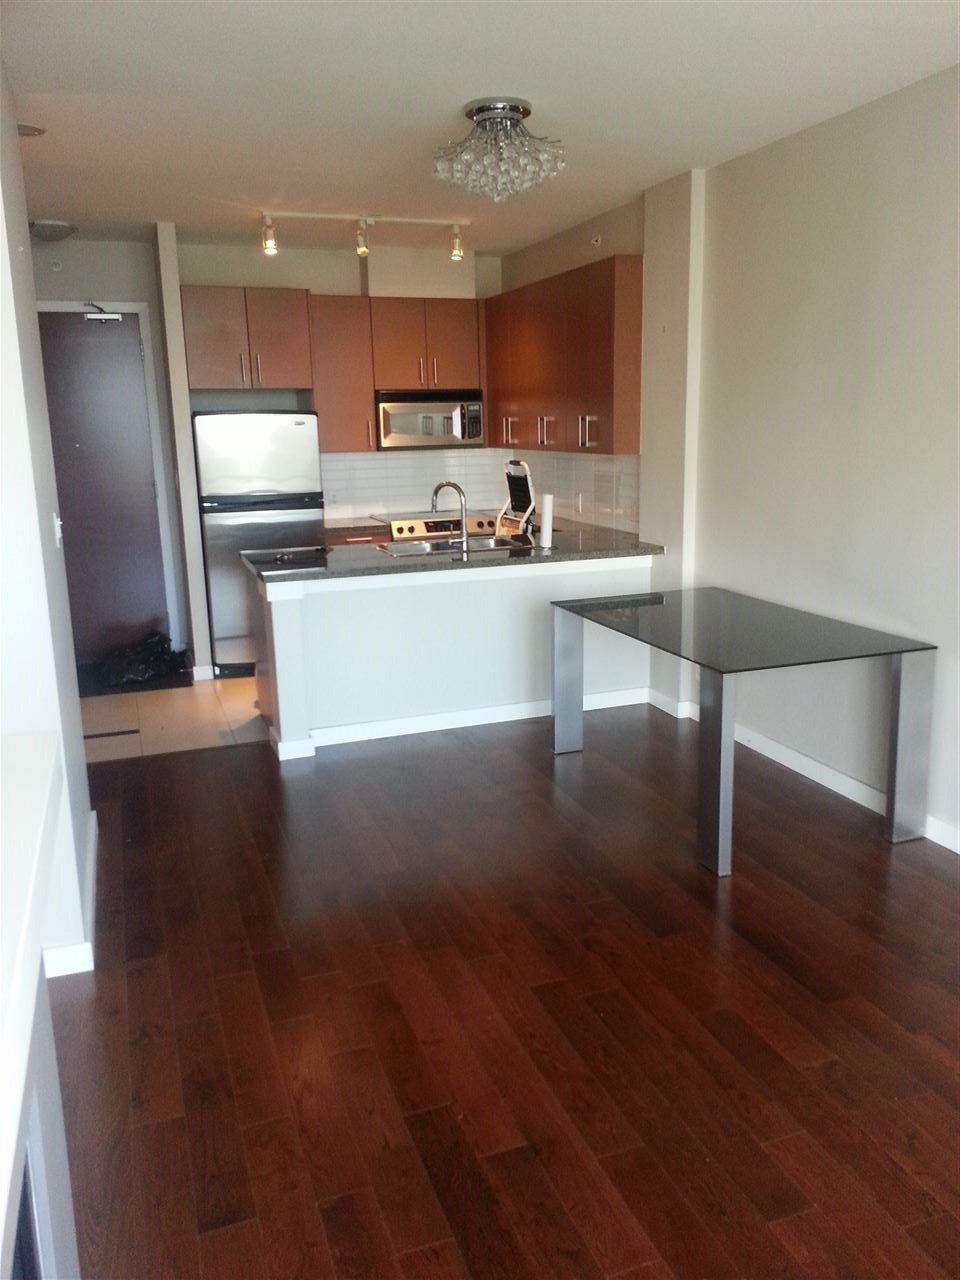 """Main Photo: 1705 2355 MADISON Avenue in Burnaby: Brentwood Park Condo for sale in """"OMA 1"""" (Burnaby North)  : MLS®# R2519344"""